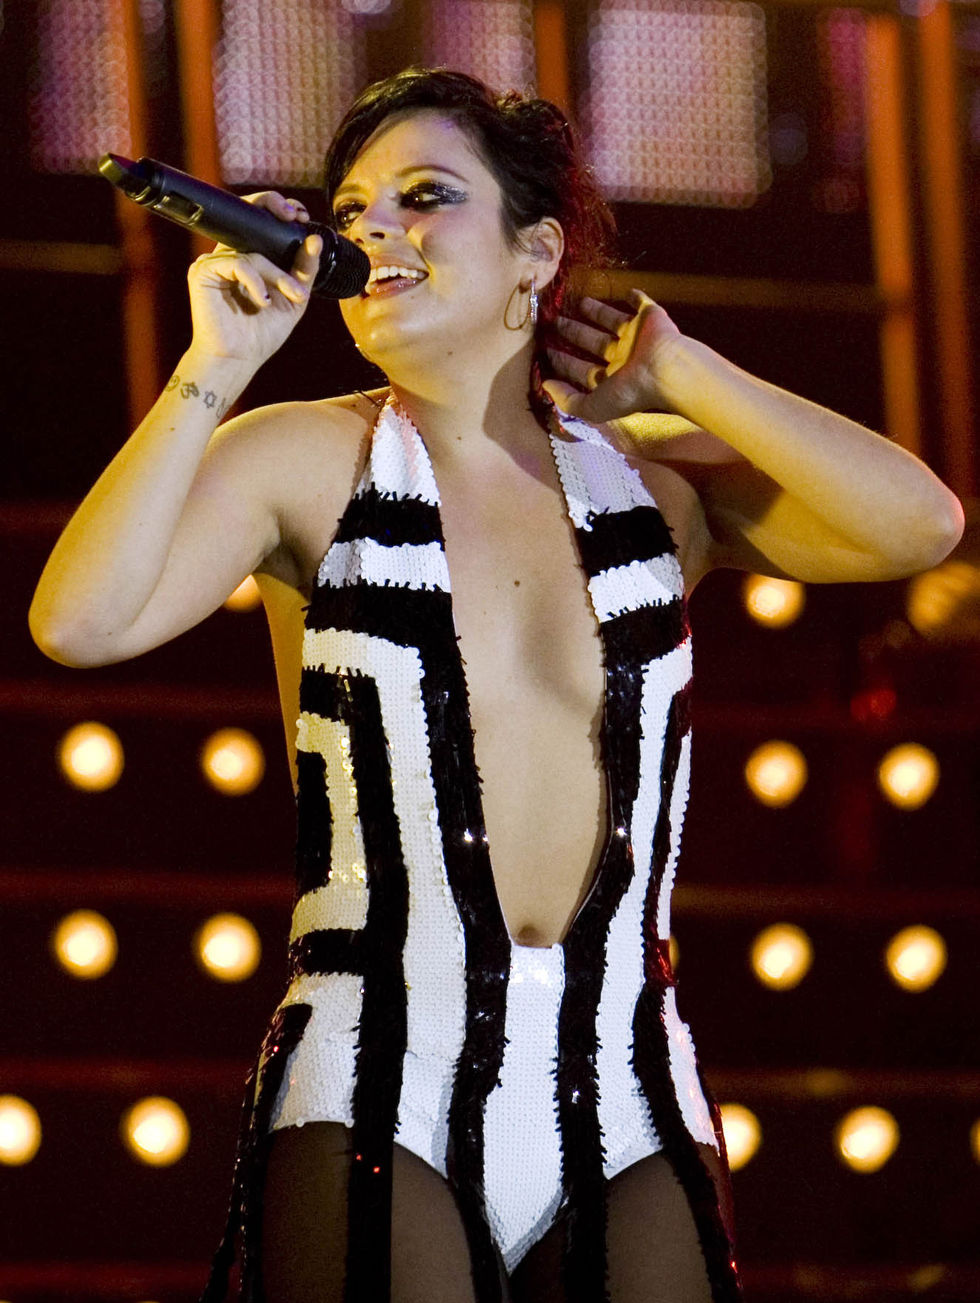 lily-allen-performs-at-the-o2-academy-brixton-in-london-01